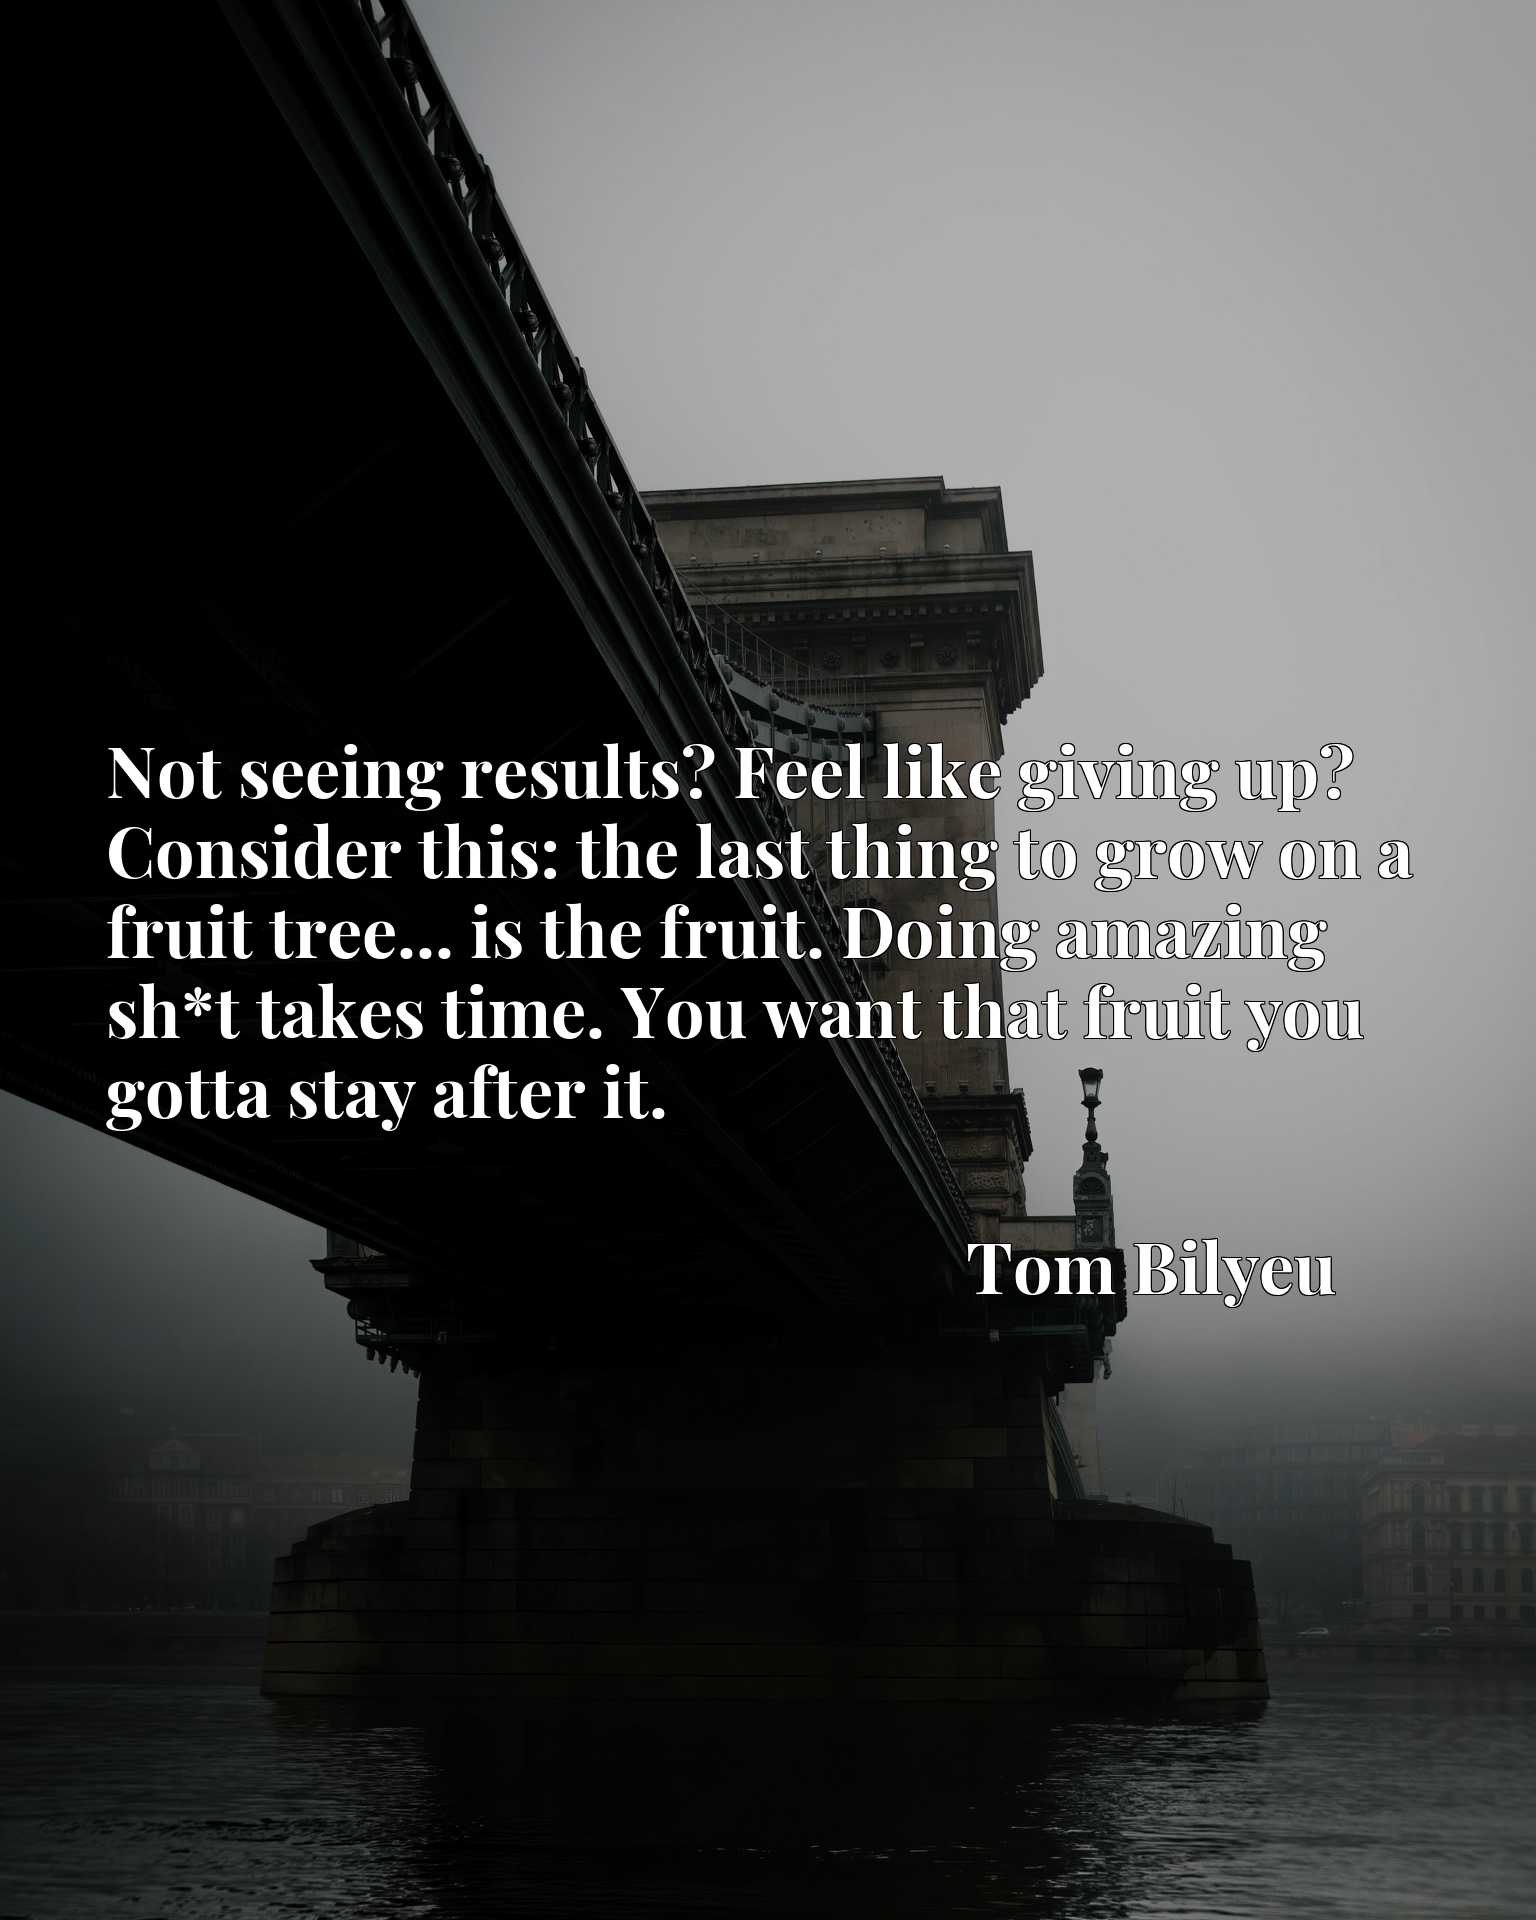 Not seeing results? Feel like giving up? Consider this: the last thing to grow on a fruit tree... is the fruit. Doing amazing sh*t takes time. You want that fruit you gotta stay after it.